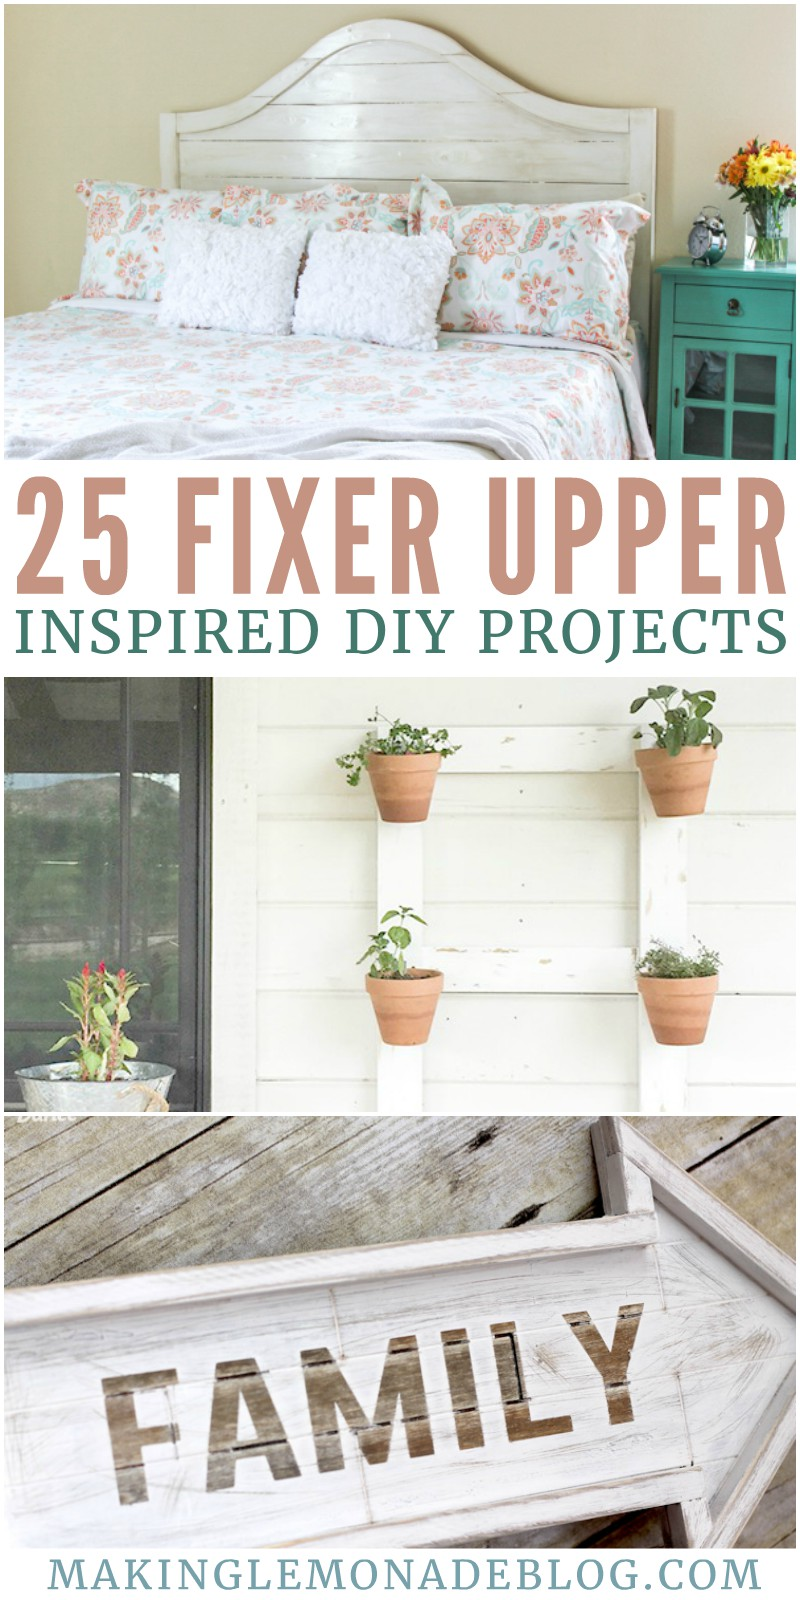 25 Fixer Upper Inspired DIY Projects